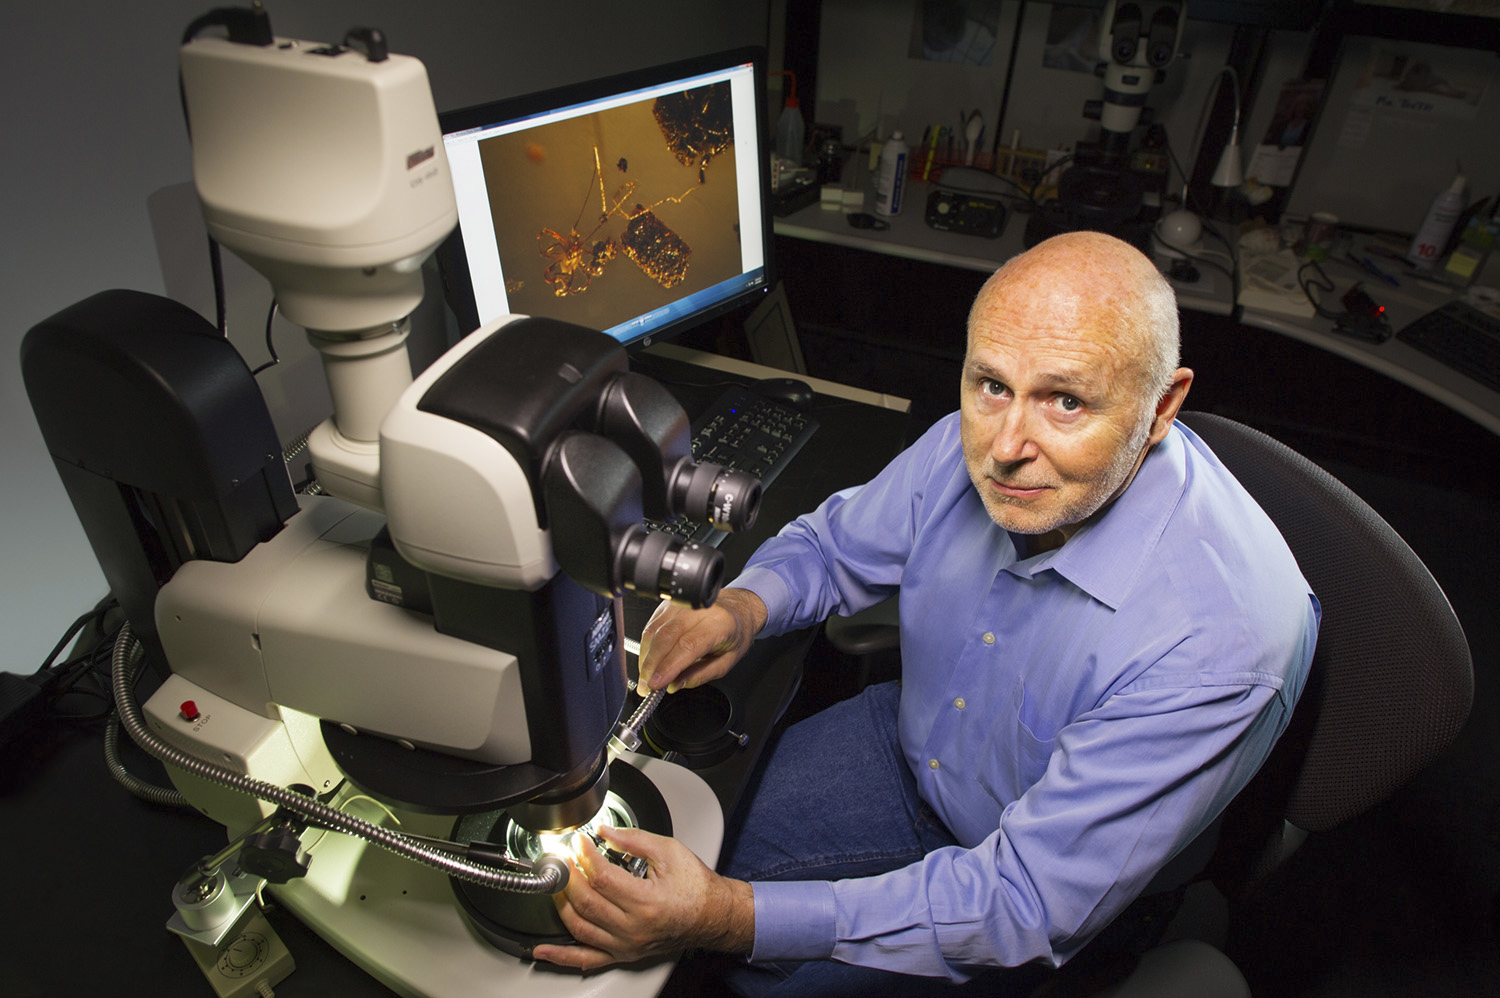 The world's foremost authority on inclusions in gemstones, John Koivula, with his advanced Nikon SMZ25 stereoscopic microscope with built-in image stacking capability. Image stacking is commonly used today to increase the depth of field for a medium that has extreme limits due to the high magnification.